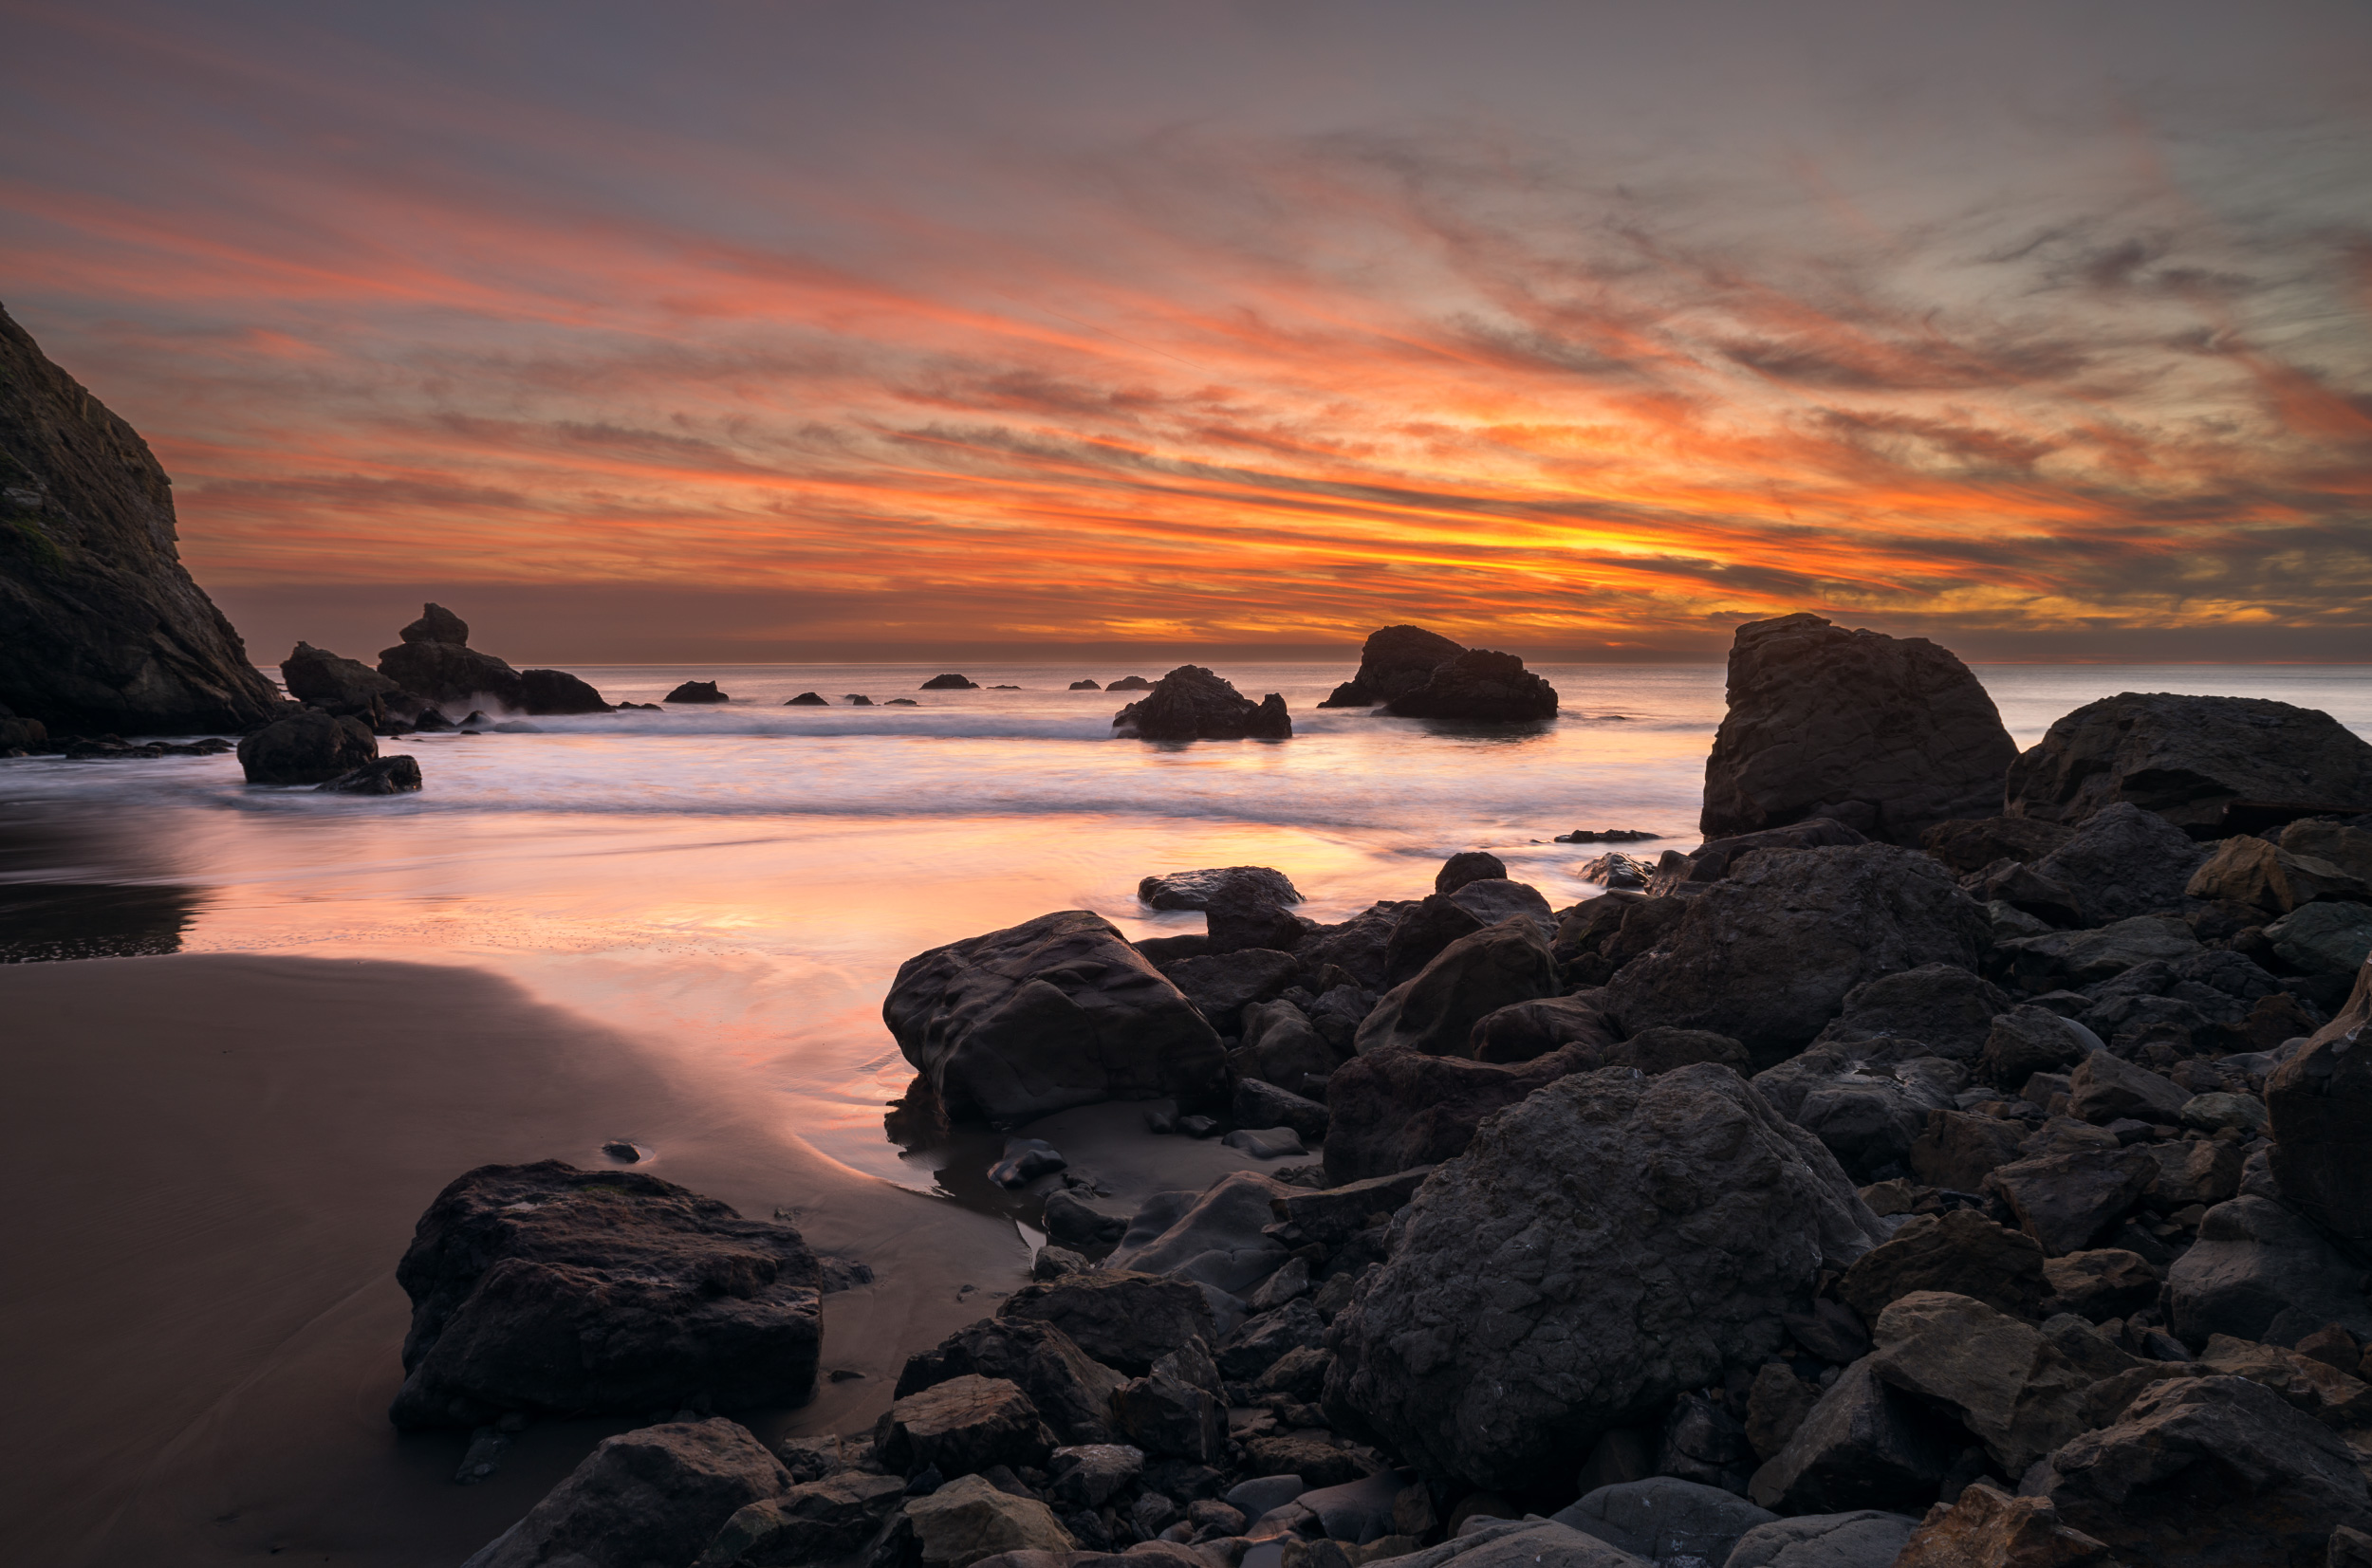 Sunset at Pirates Cove, Golden Gate National Recreation Area